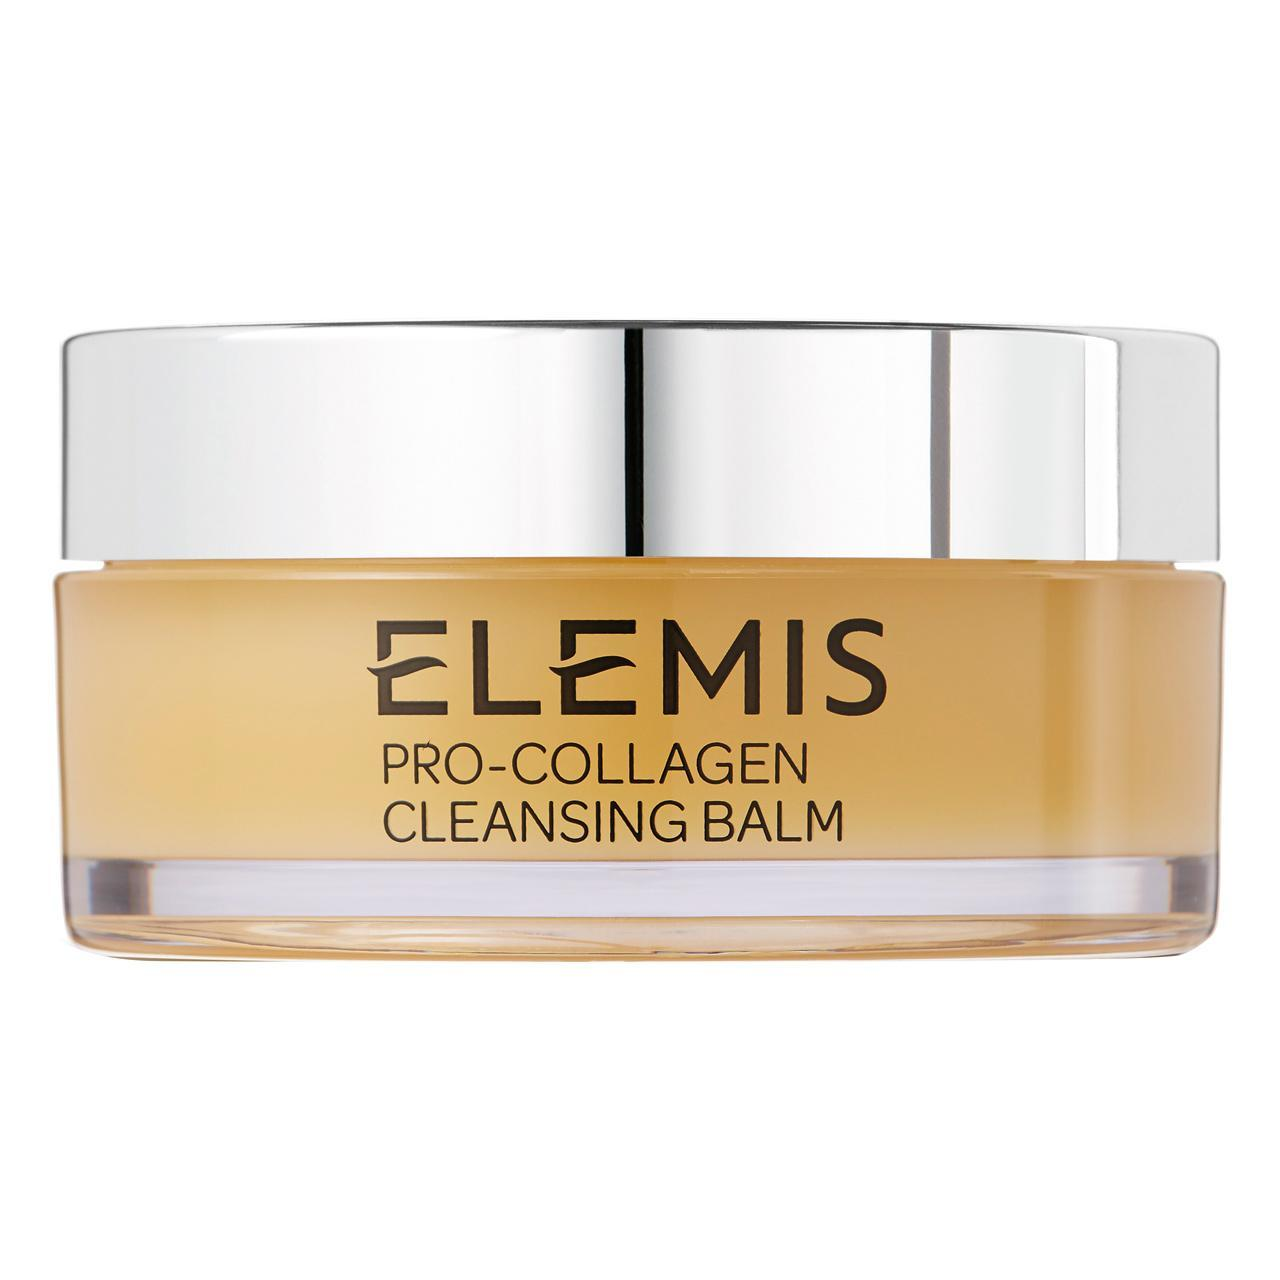 An image of ELEMIS Pro-Collagen Cleansing Balm